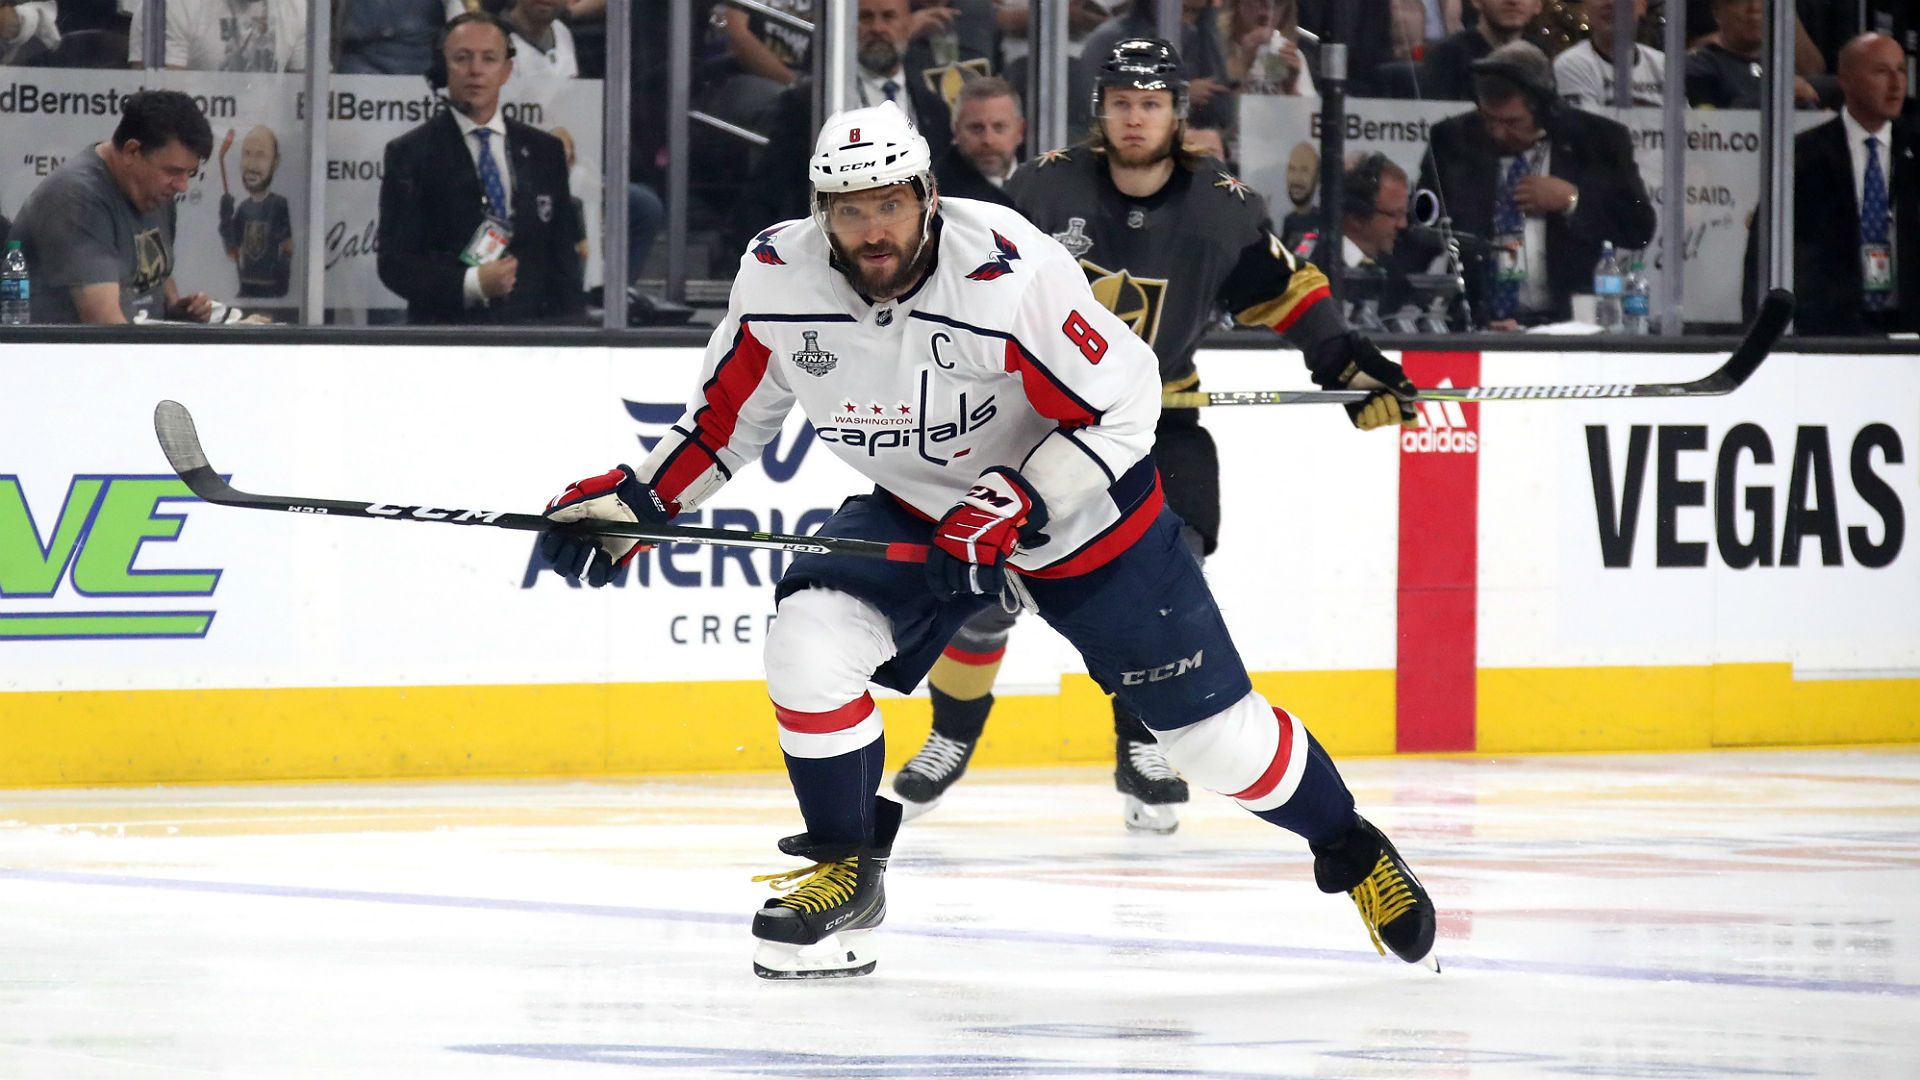 Capitals Win Game 4, Take Commanding Series Lead